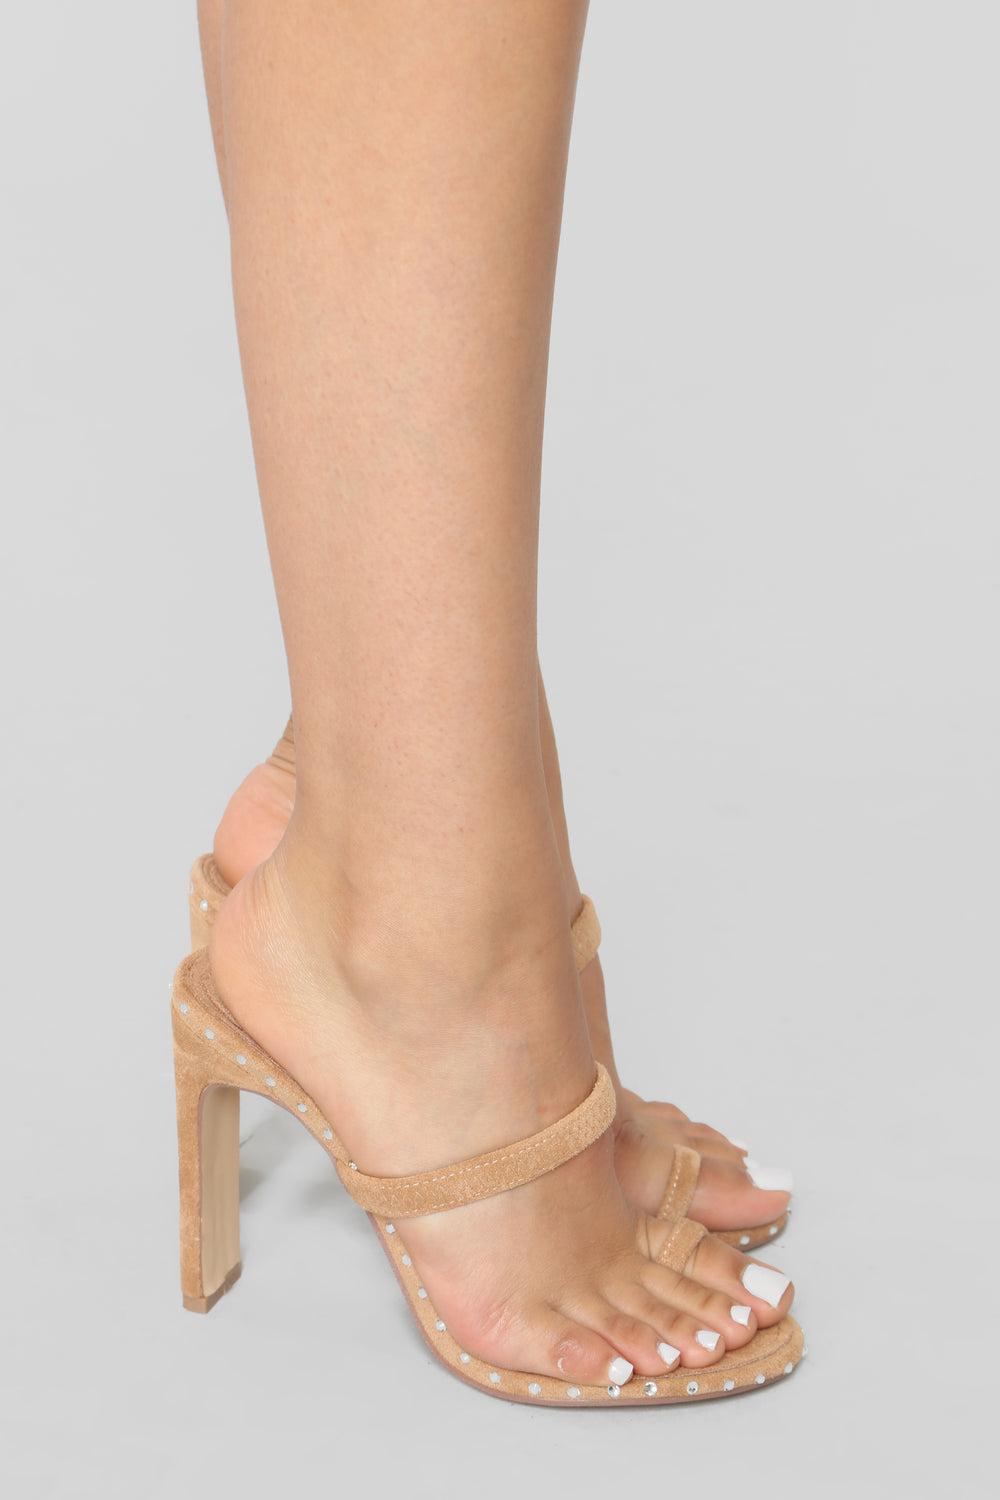 Don't Be So Envious Heeled Sandal - Nude